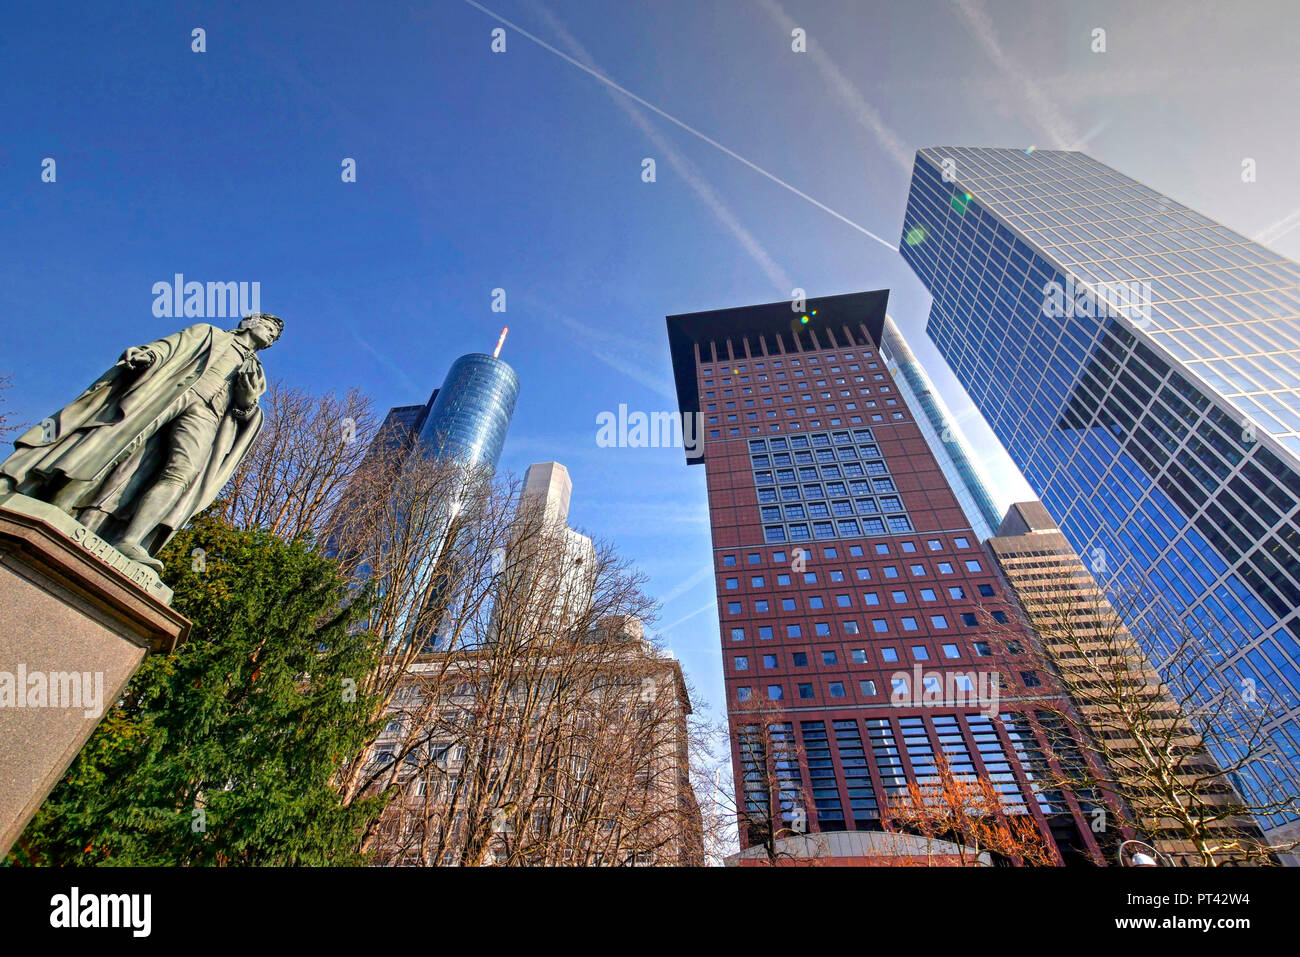 Schiller monument in the Taunus area and skyscrapers in the banking district, Frankfurt am Main, Hesse, Germany - Stock Image